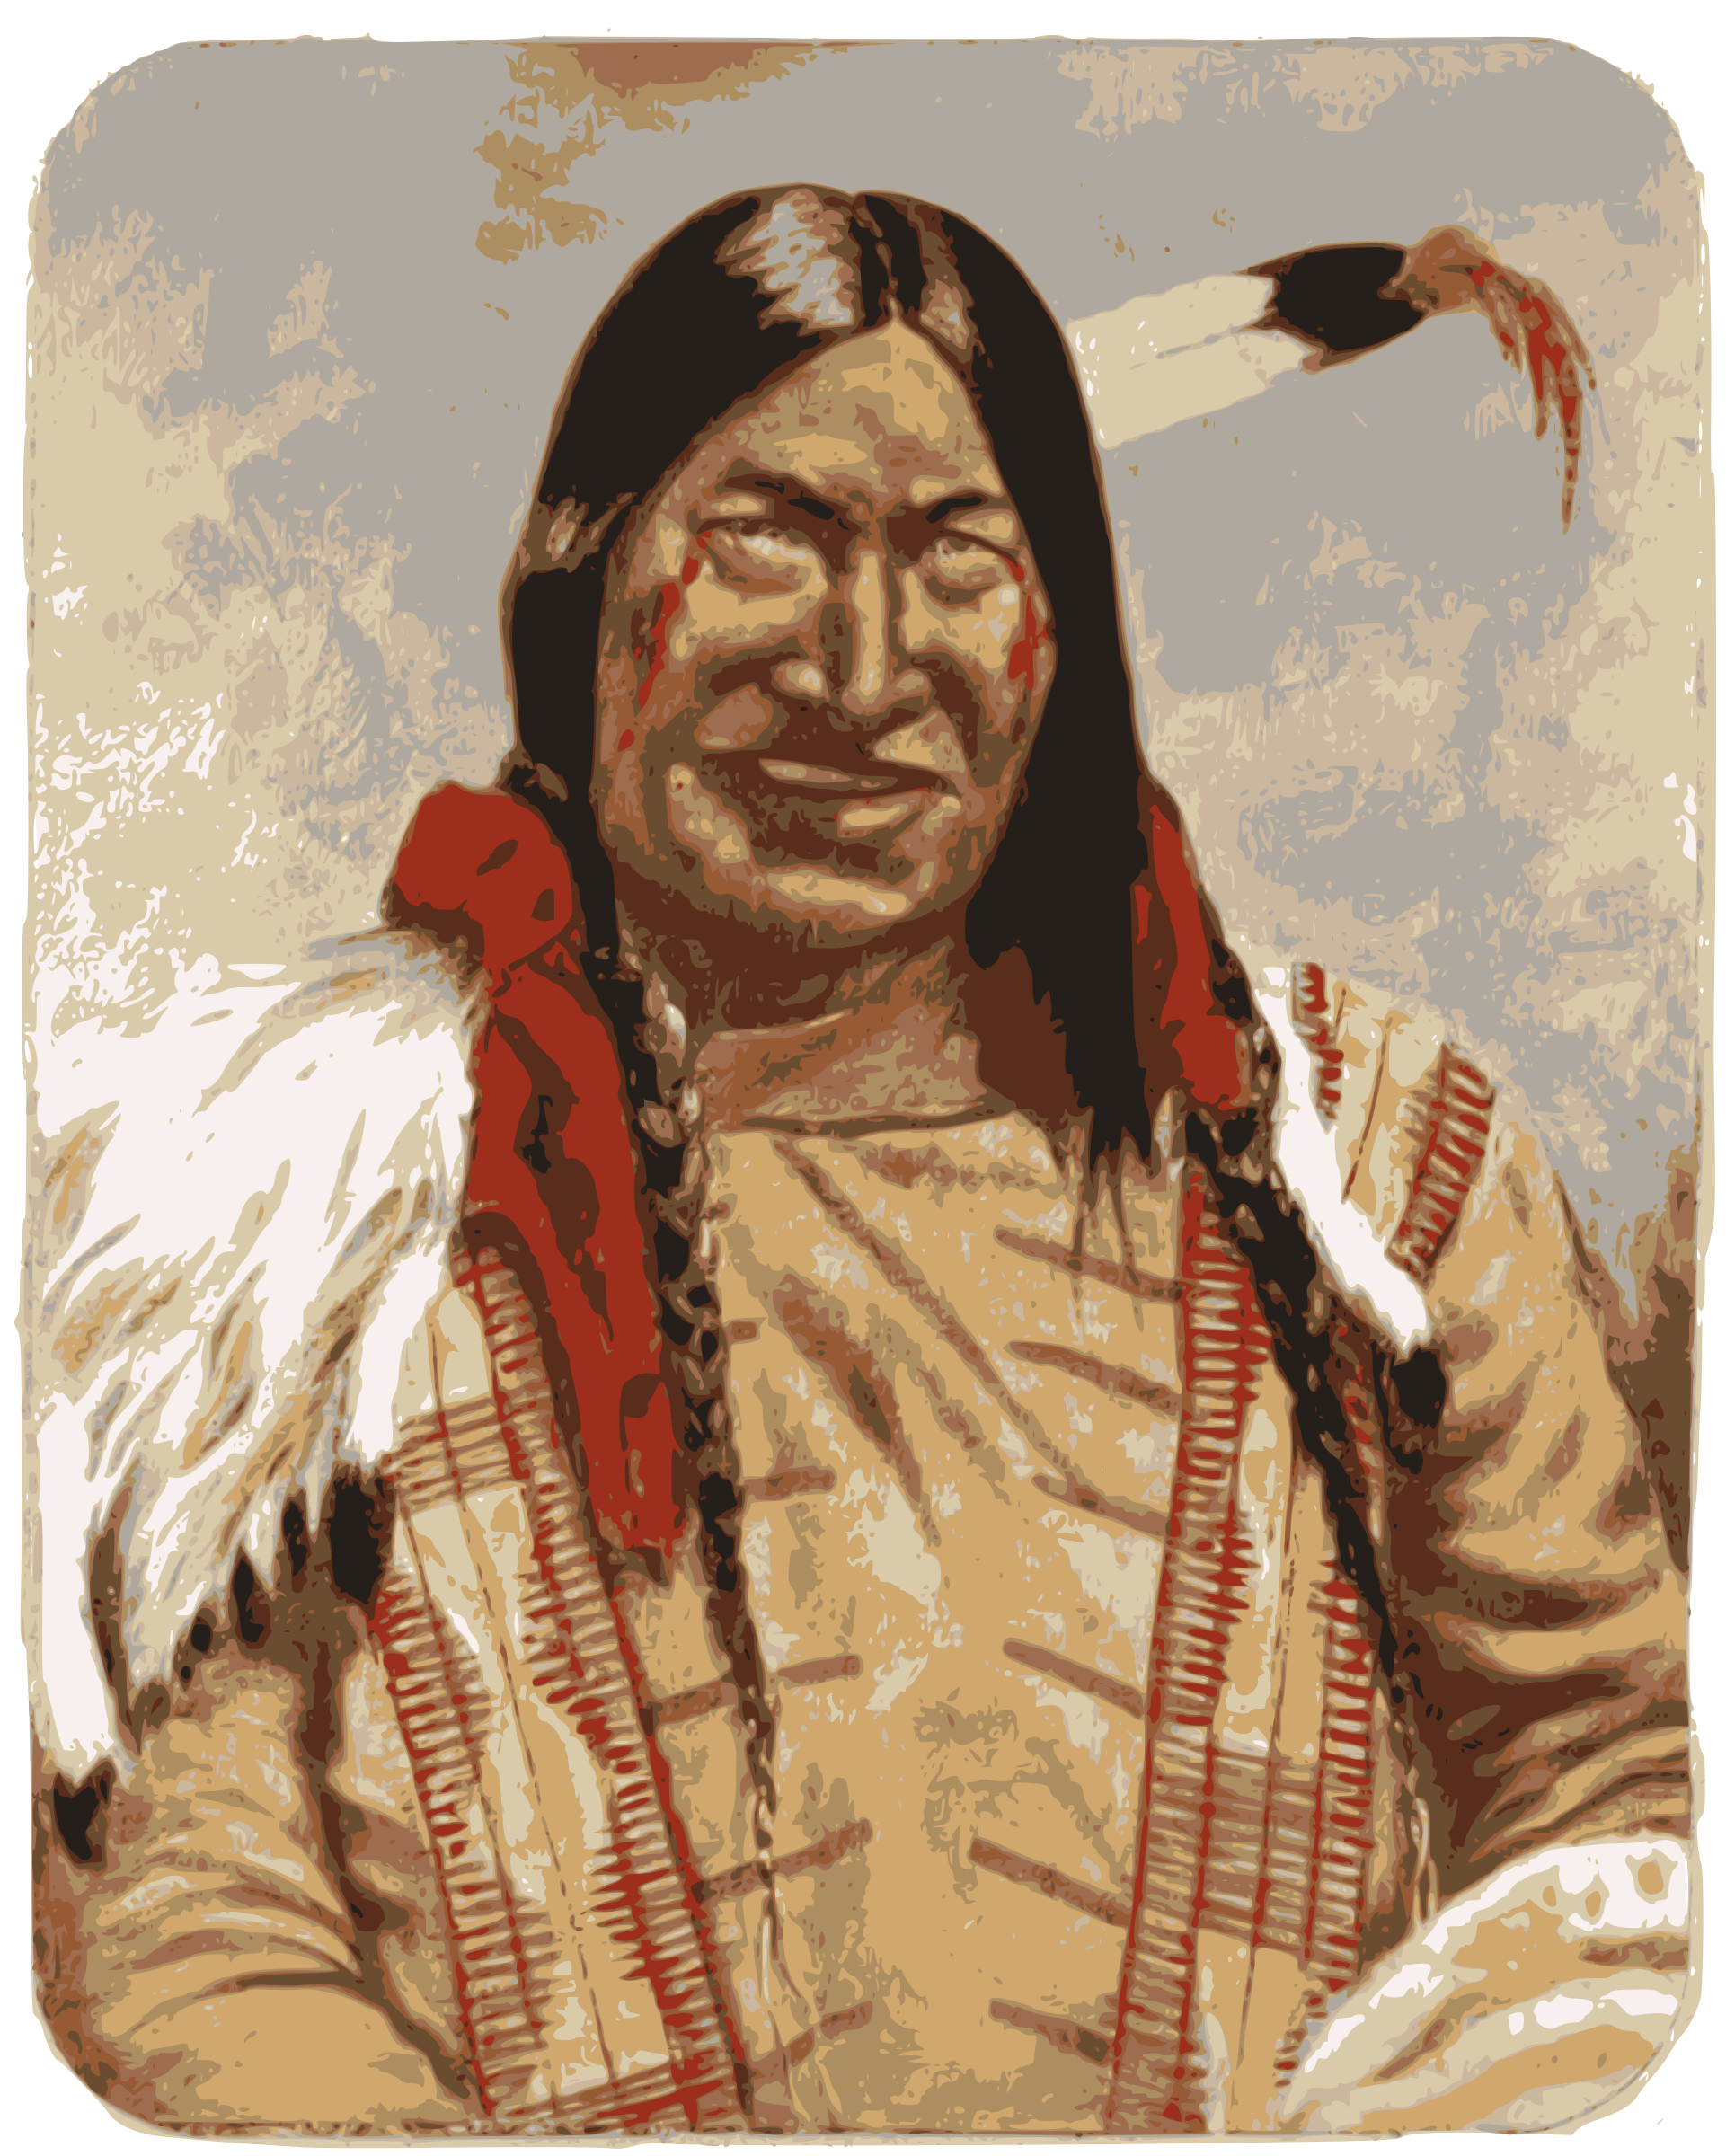 Native American Man by j4p4n